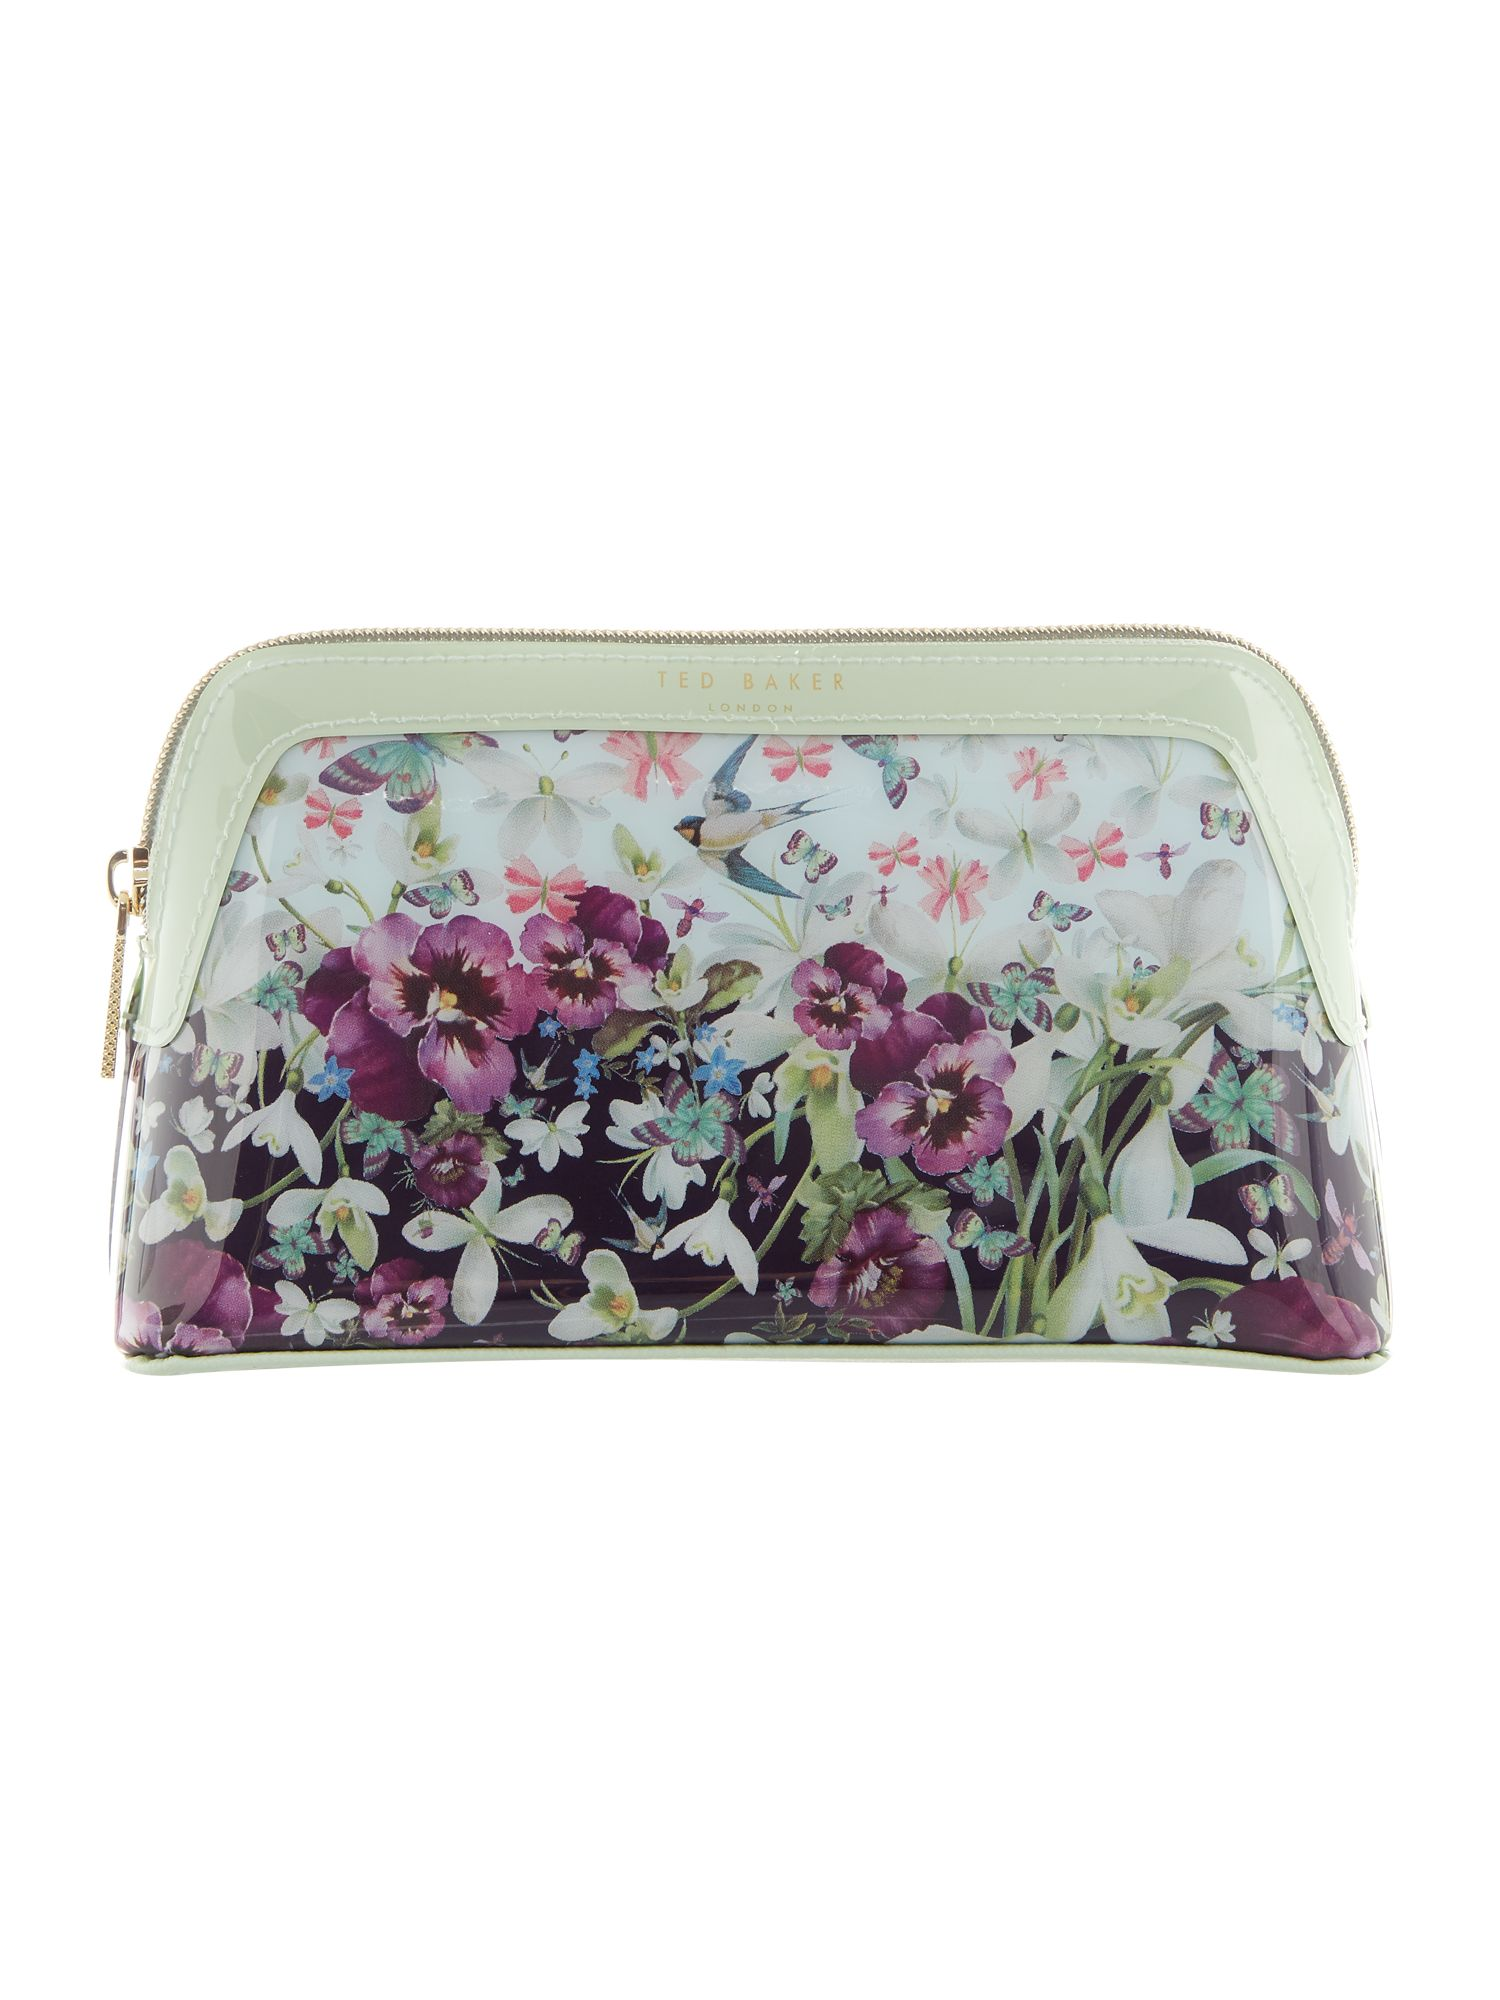 Ted Baker Eiliana enchantment small cosmetic bag Navy